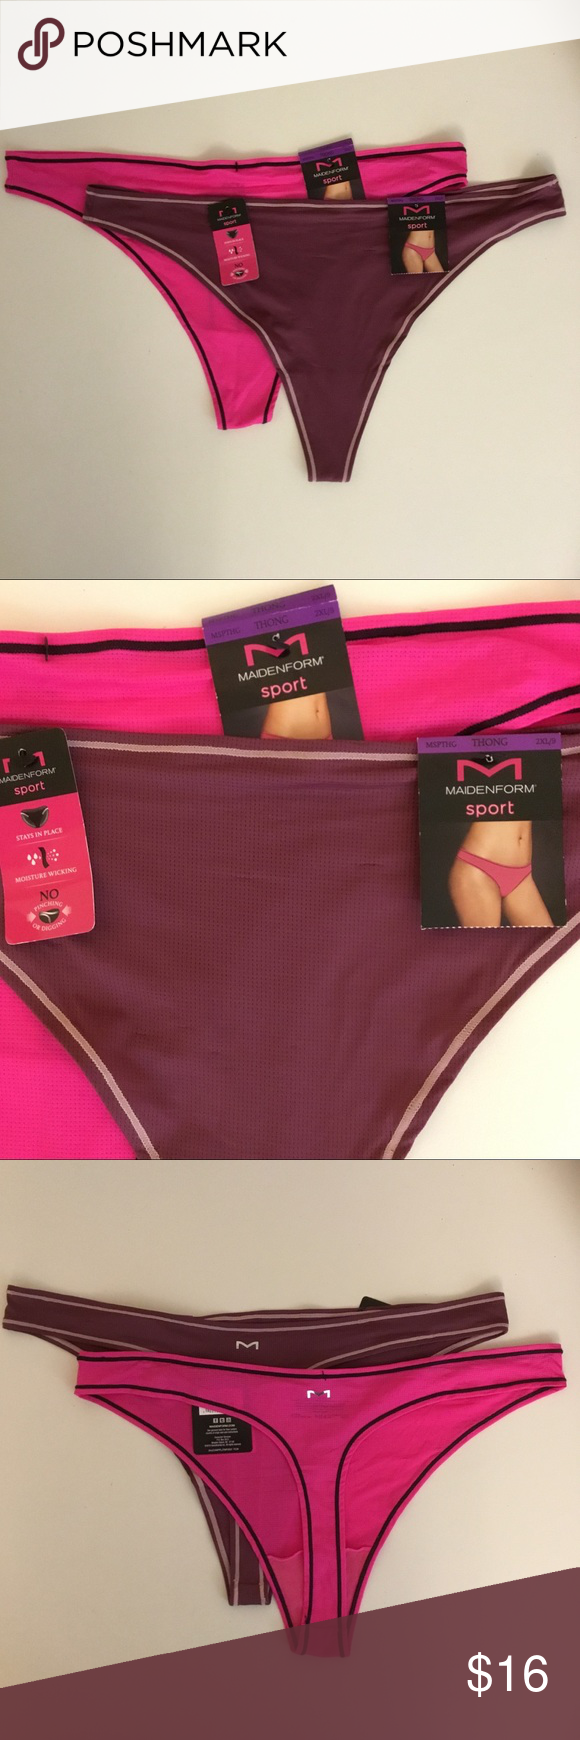 89a11d31e6b2 2 pairs of Maidenform Sport Thong Panties 2XL 9 2 pairs of Maidenform Sport  Thong Panties Size 2XL / 9 Style MSPTHG Style DMMSMT Tagless Sexy  Comfortable ...